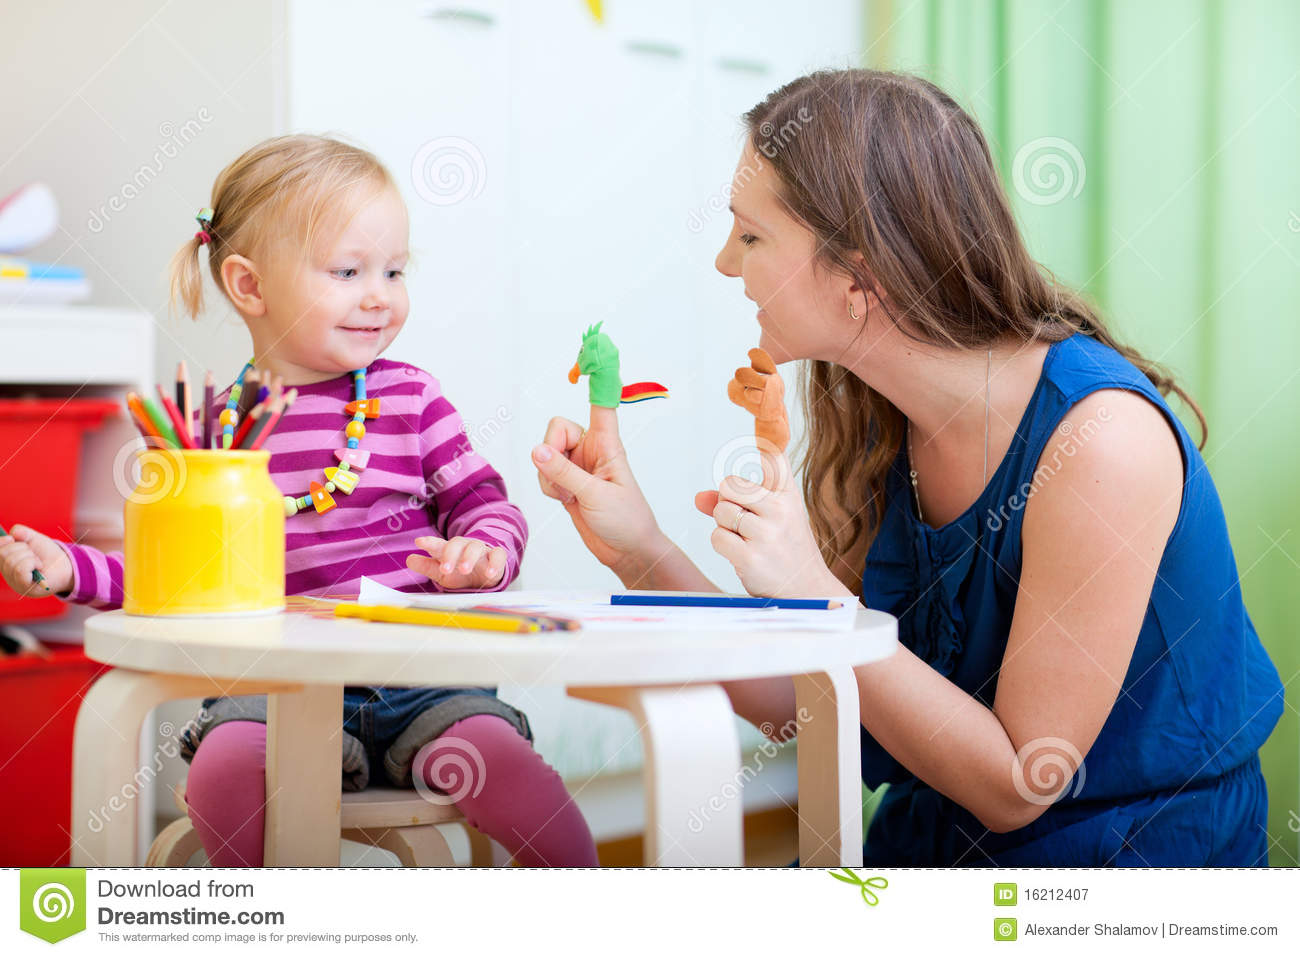 Mom Play Toys : Mother and daughter playing with finger toys royalty free